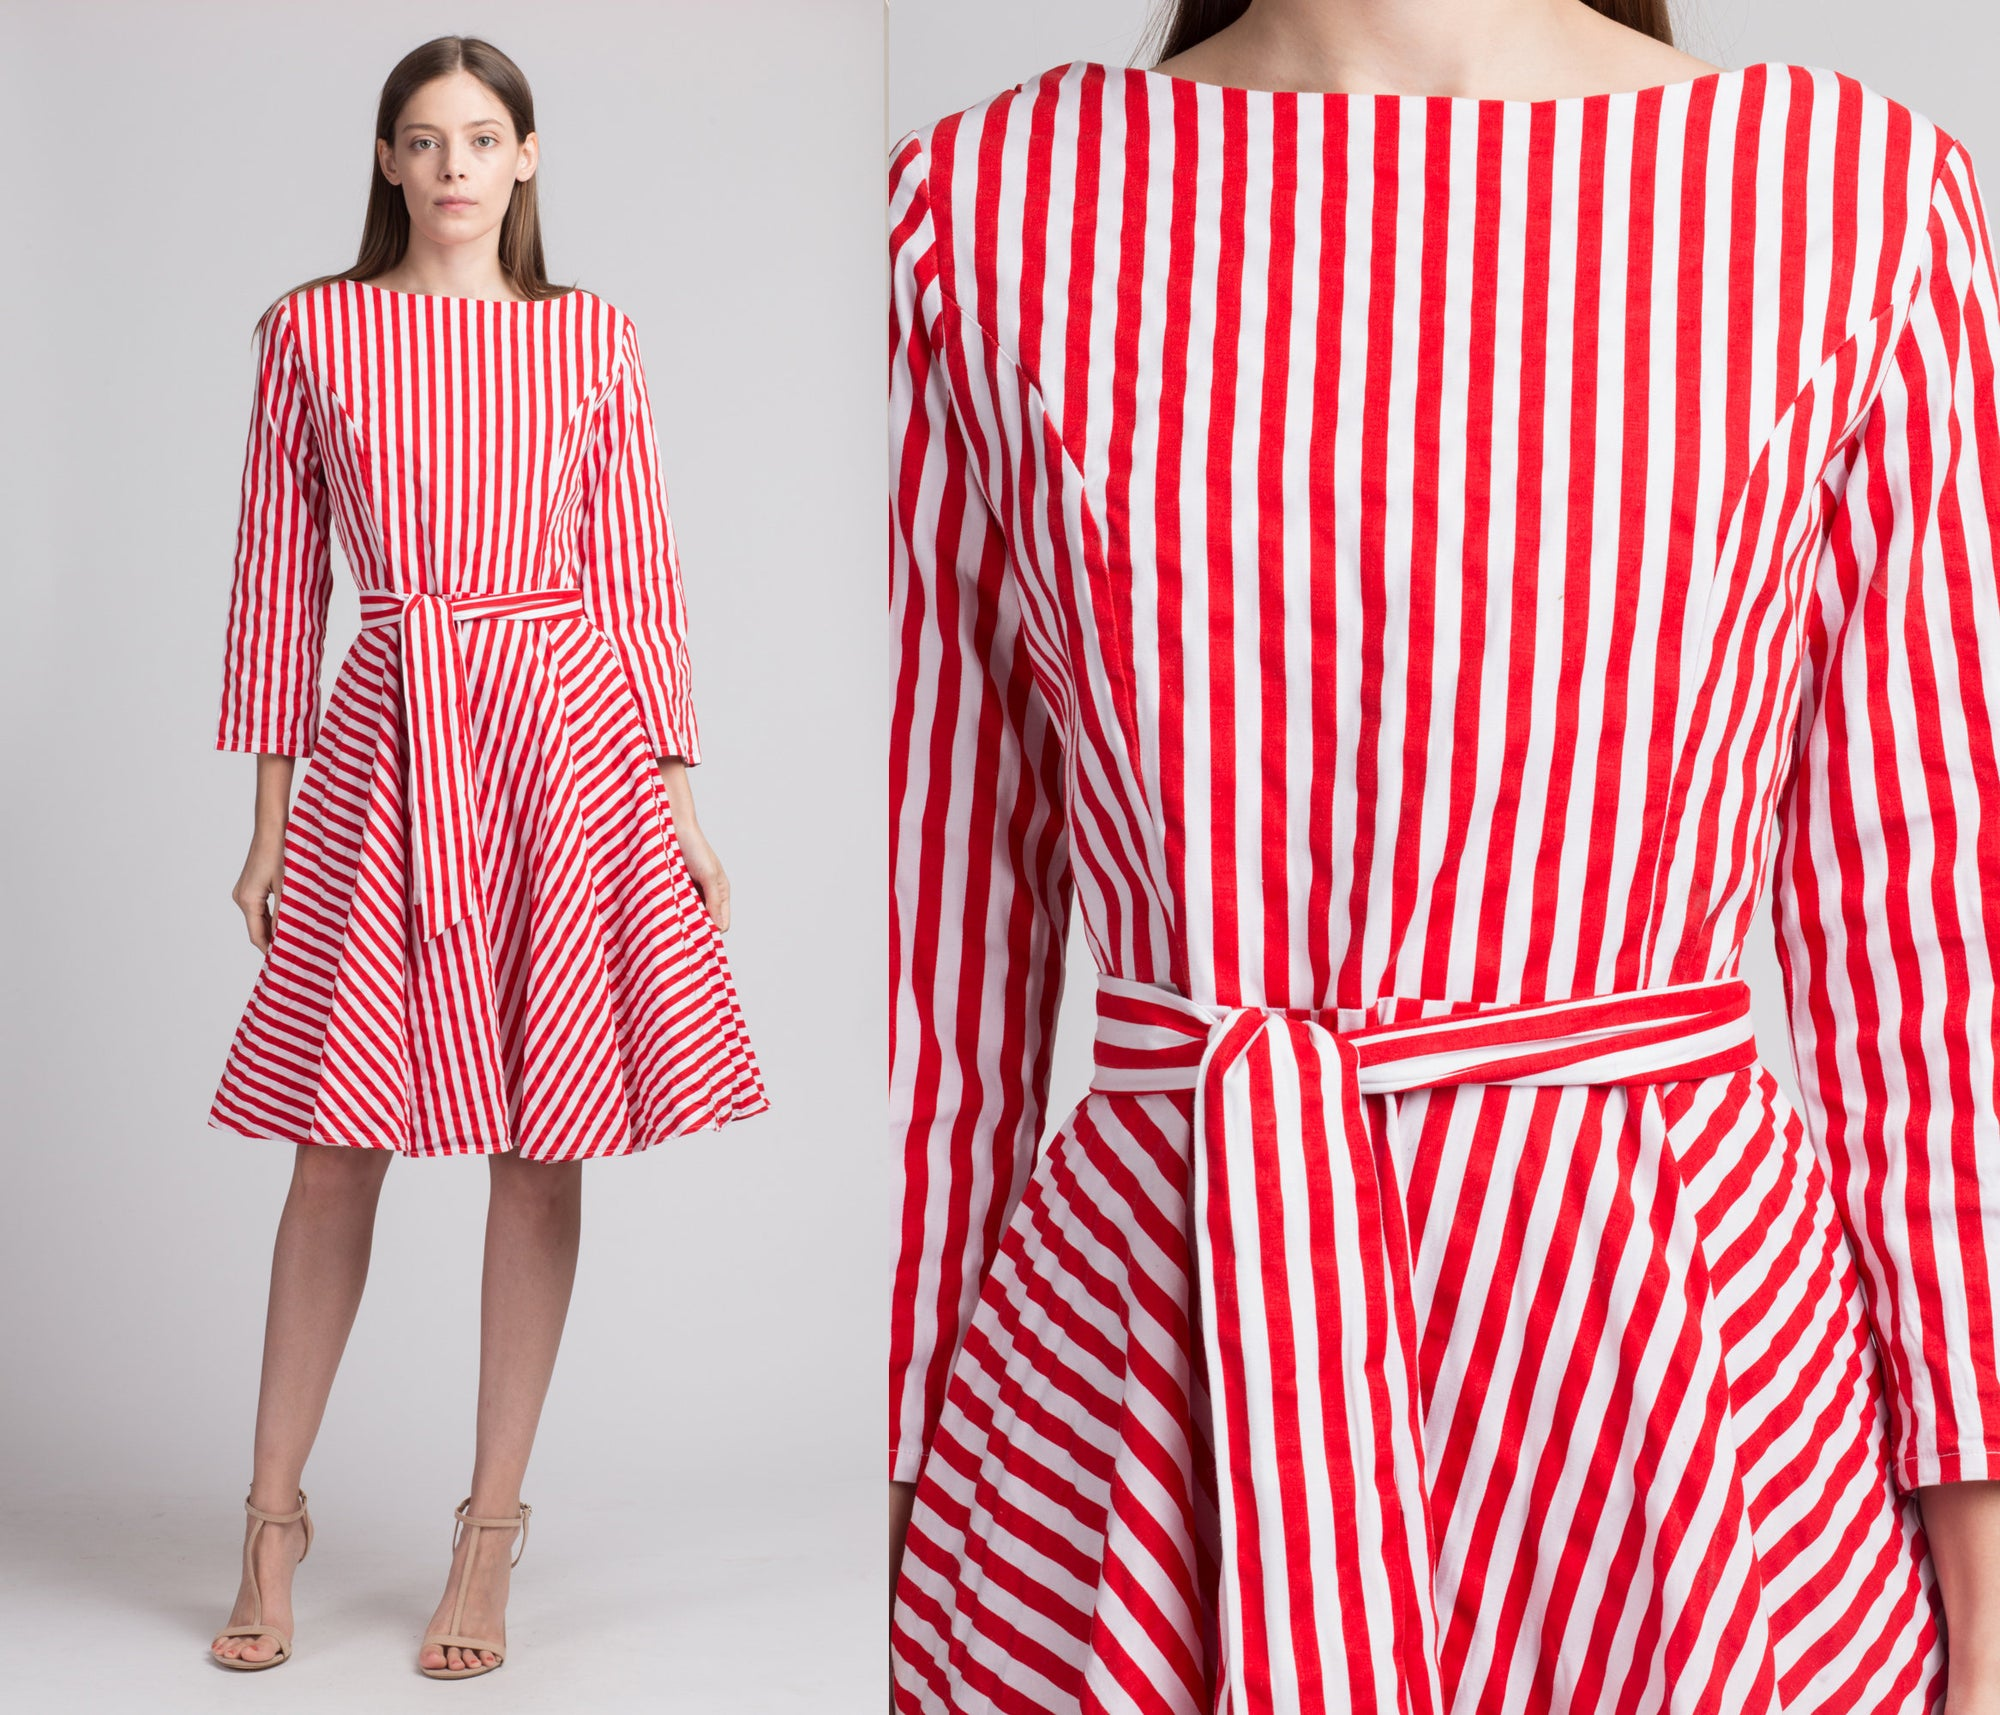 Vintage Red Candy Stripe Dress - Medium